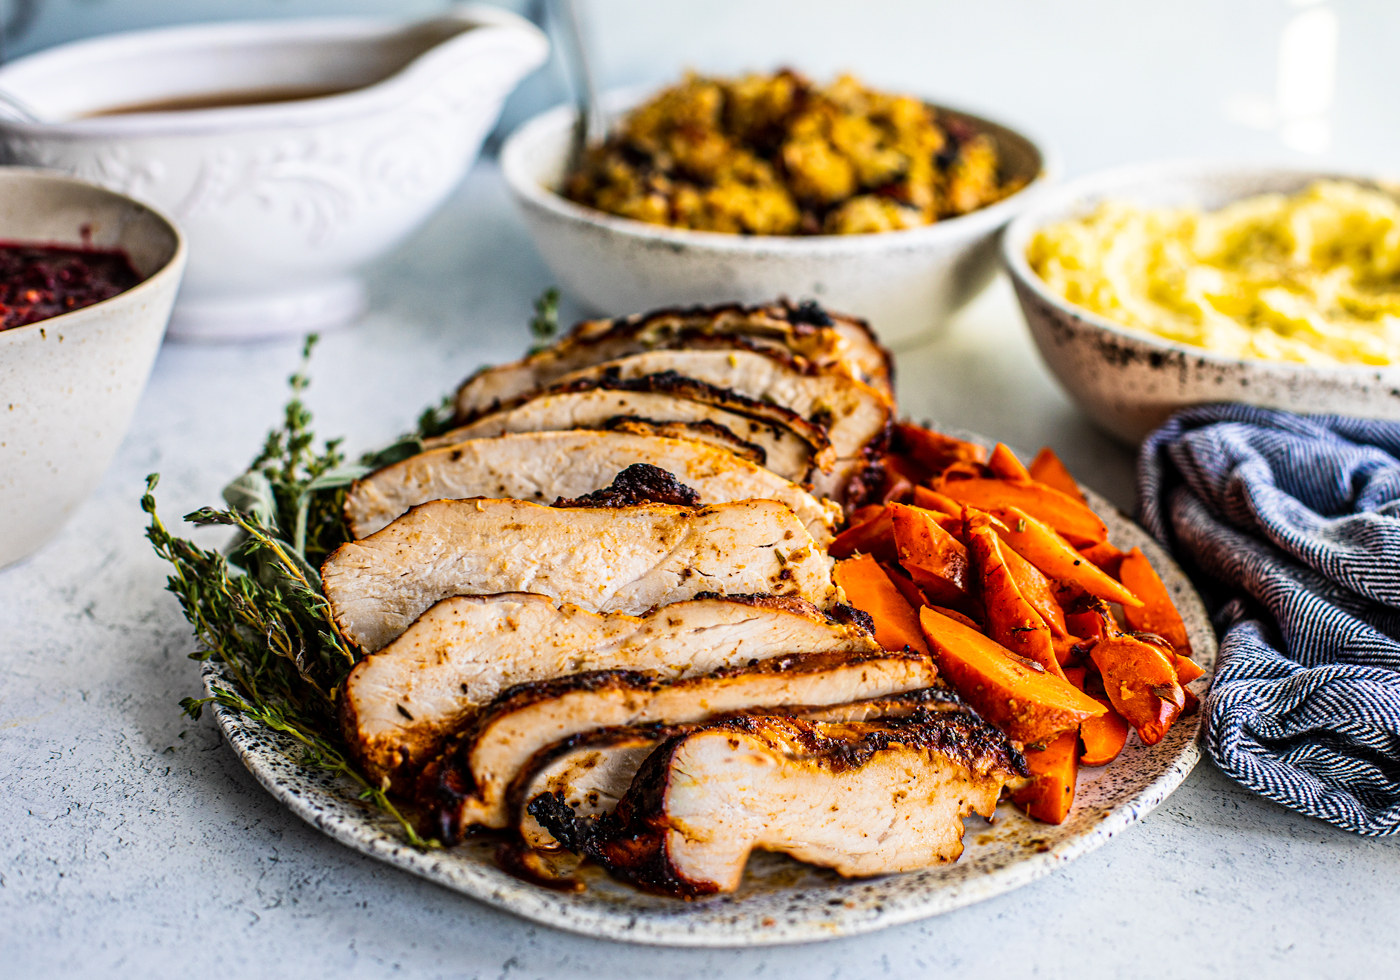 Close up side shot of sliced turkey breast on serving platter with serving bowls of holiday sides blurred in background.